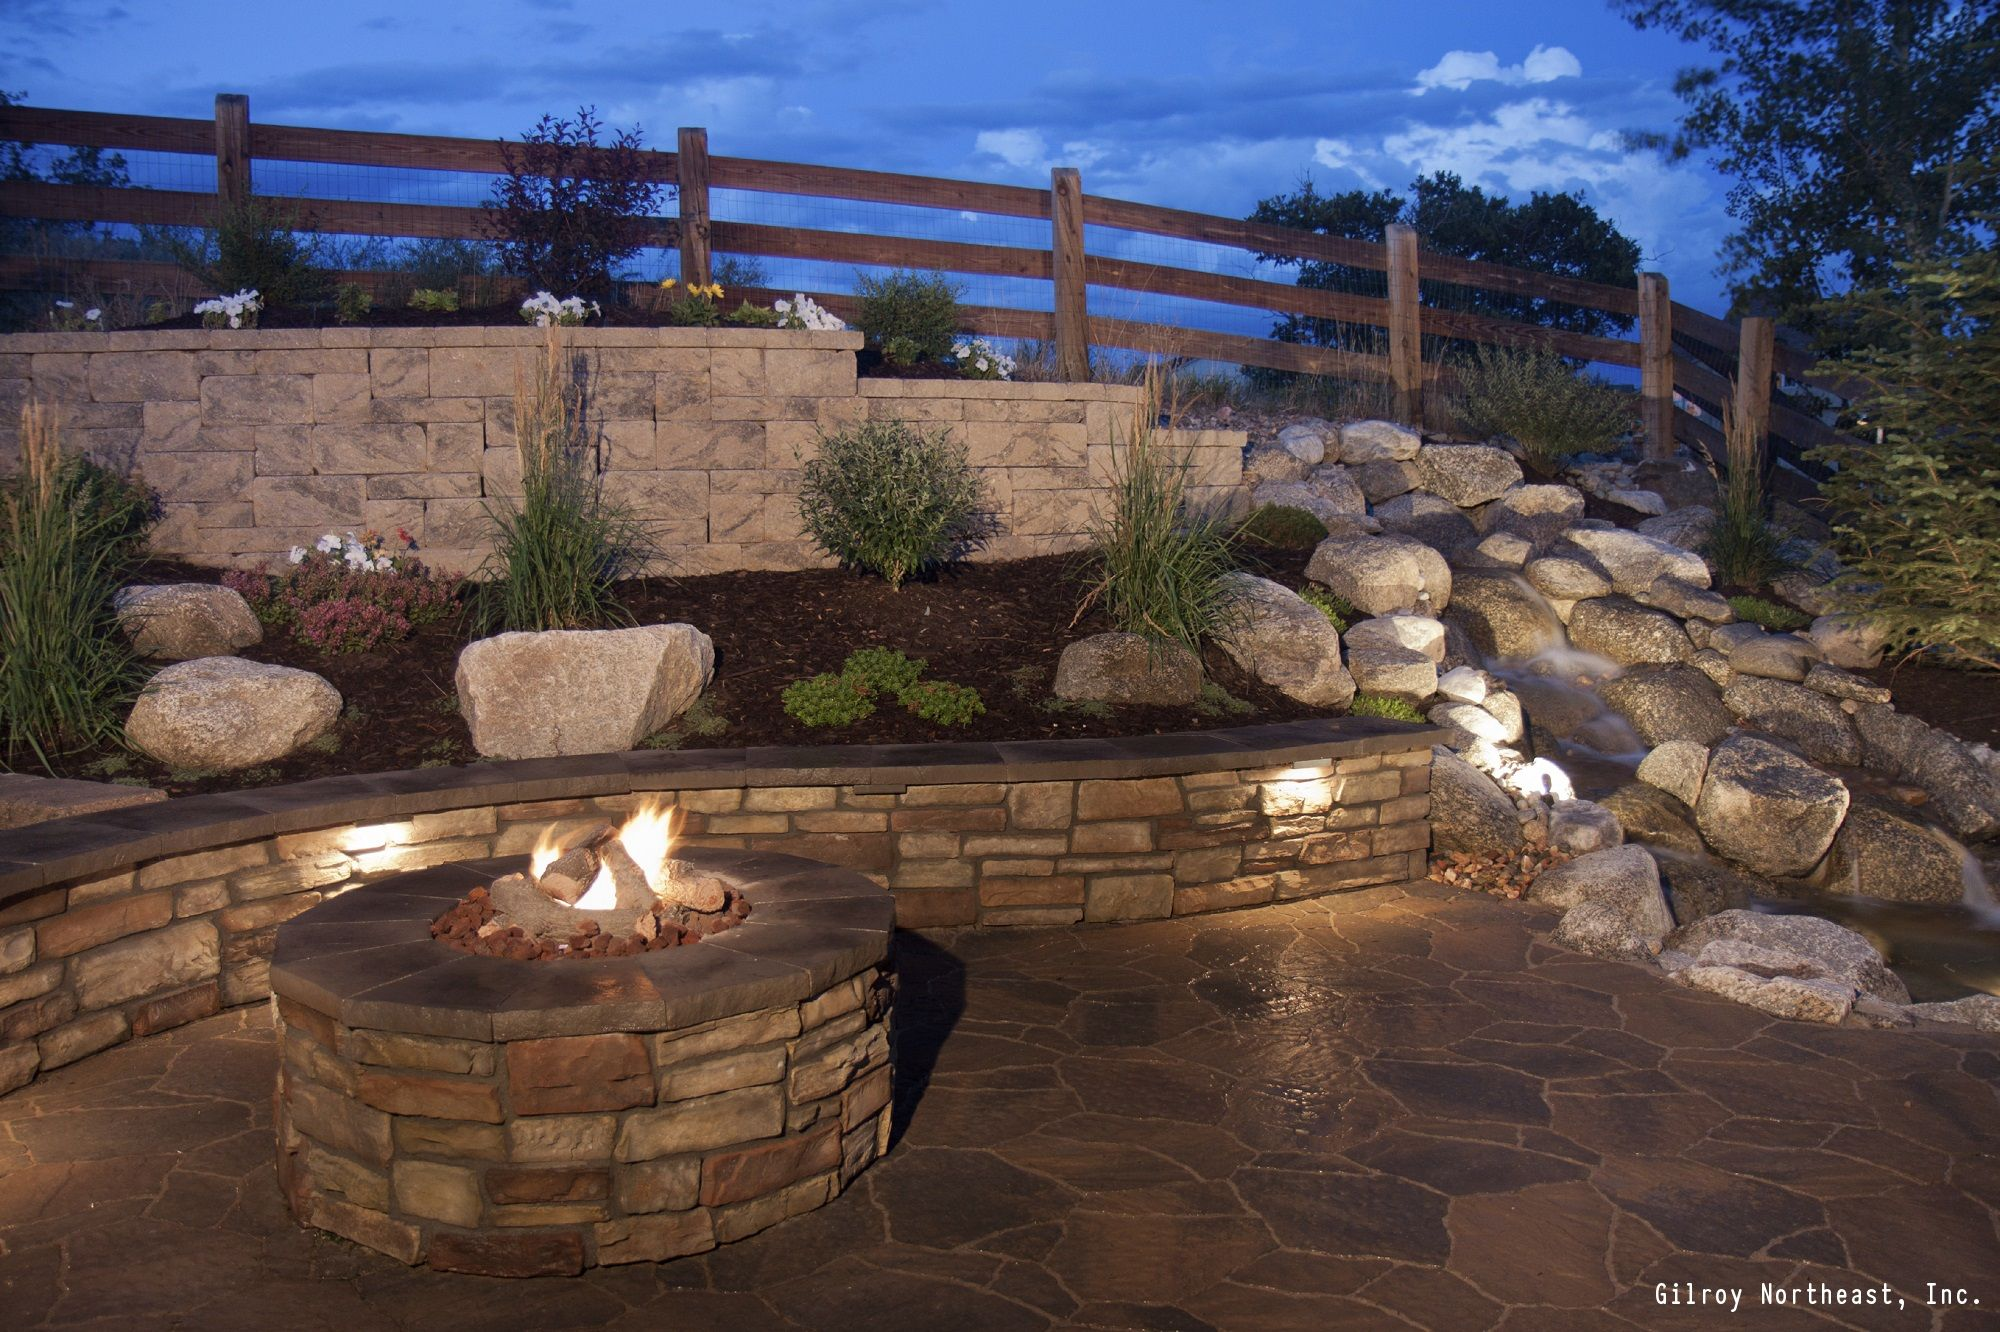 7 DIY Ways To Make Your Patio Awesome | Outdoor Inspiration ...